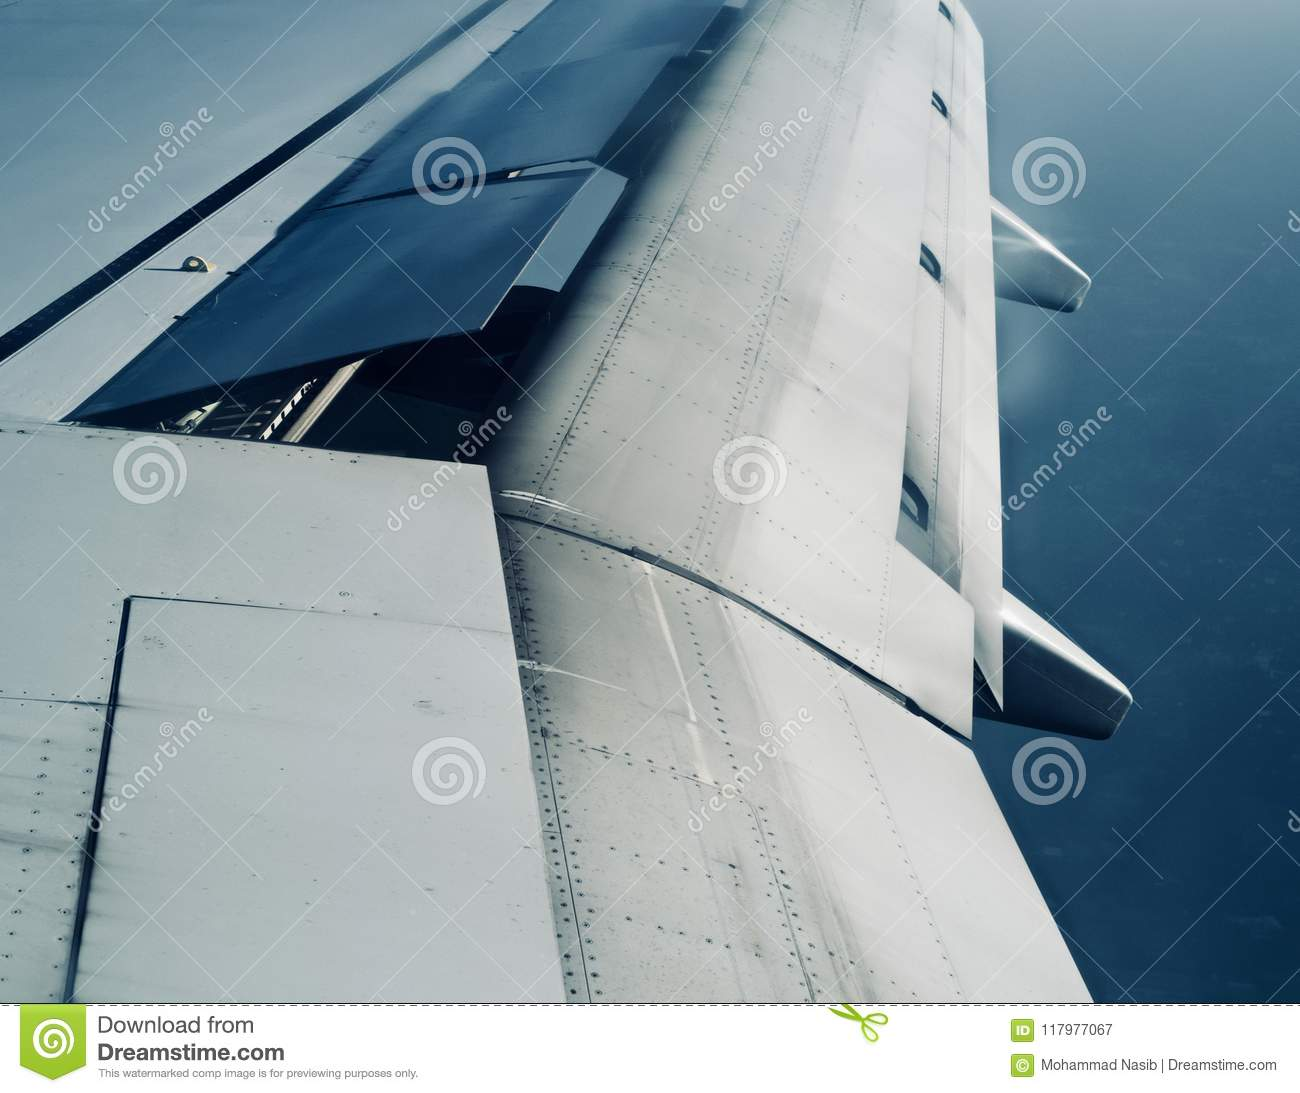 Download A Metallic Wings Of An Aircraft In The Sky  Photograph Stock Image - Image of large, background: 117977067